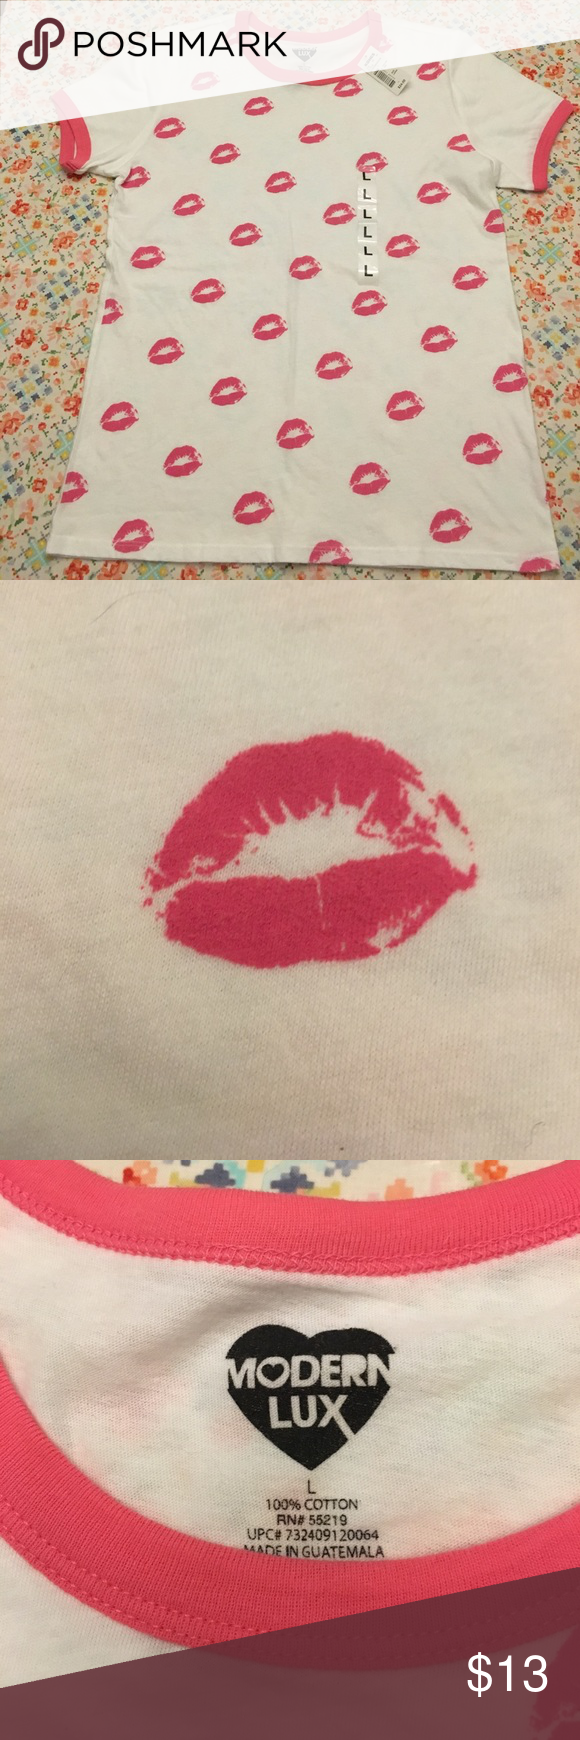 Modern Lux Kiss Lipstick T-shirt NWT Do you aspire to Wildfox status? Lipstick addict? Hopeless French kisser? White shirt with shoulder to shoulder kisses on front. Home of cute dog and no smoke. Modern Lux Tops Tees - Short Sleeve